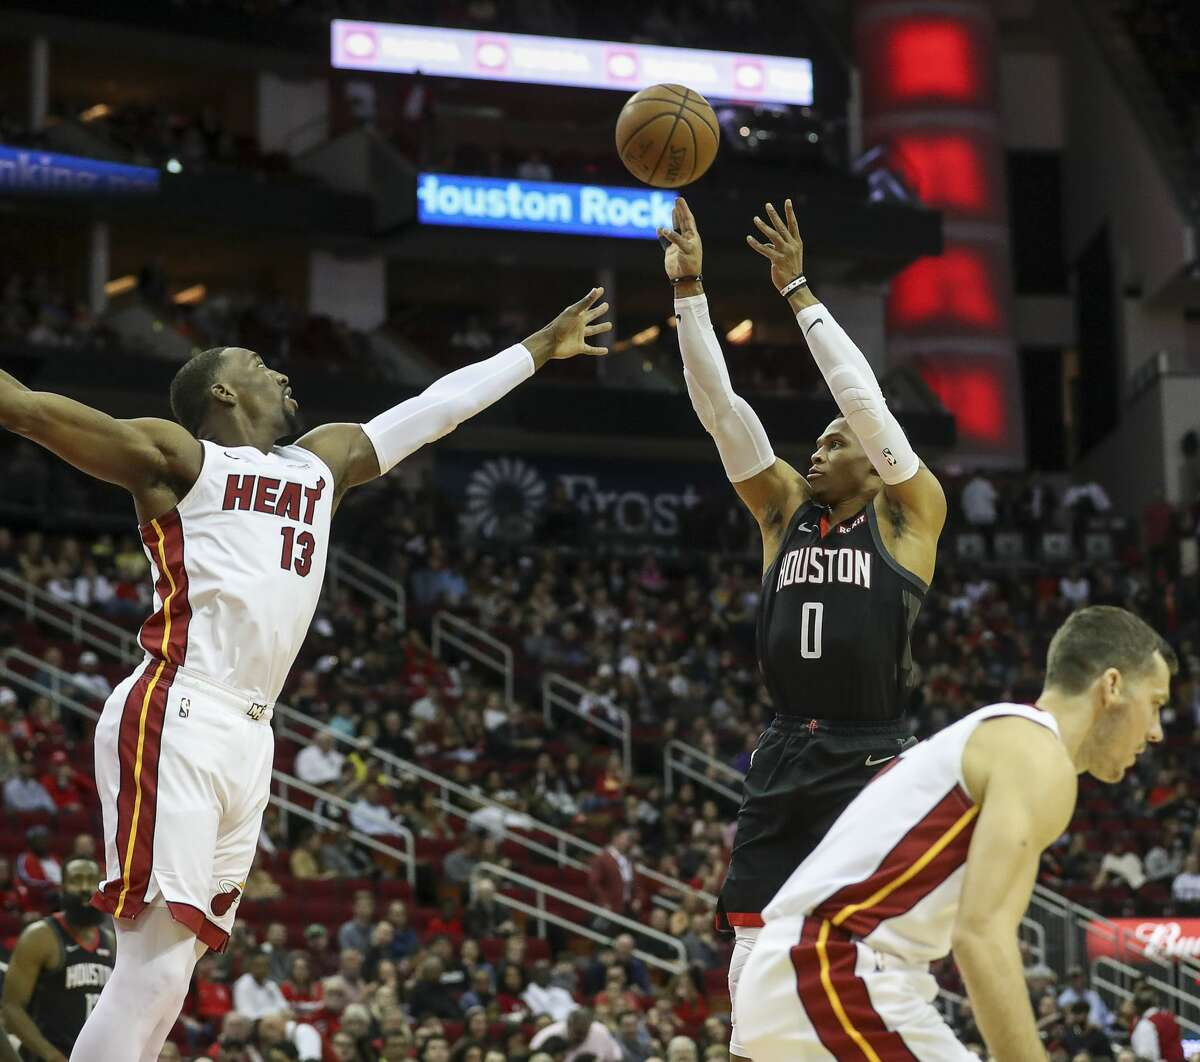 Houston Rockets guard Russell Westbrook (0) shoots over Miami Heat center Bam Adebayo (13) during the first quarter of an NBA basketball game at the Toyota Center on Wednesday, Nov. 27, 2019, in Houston.